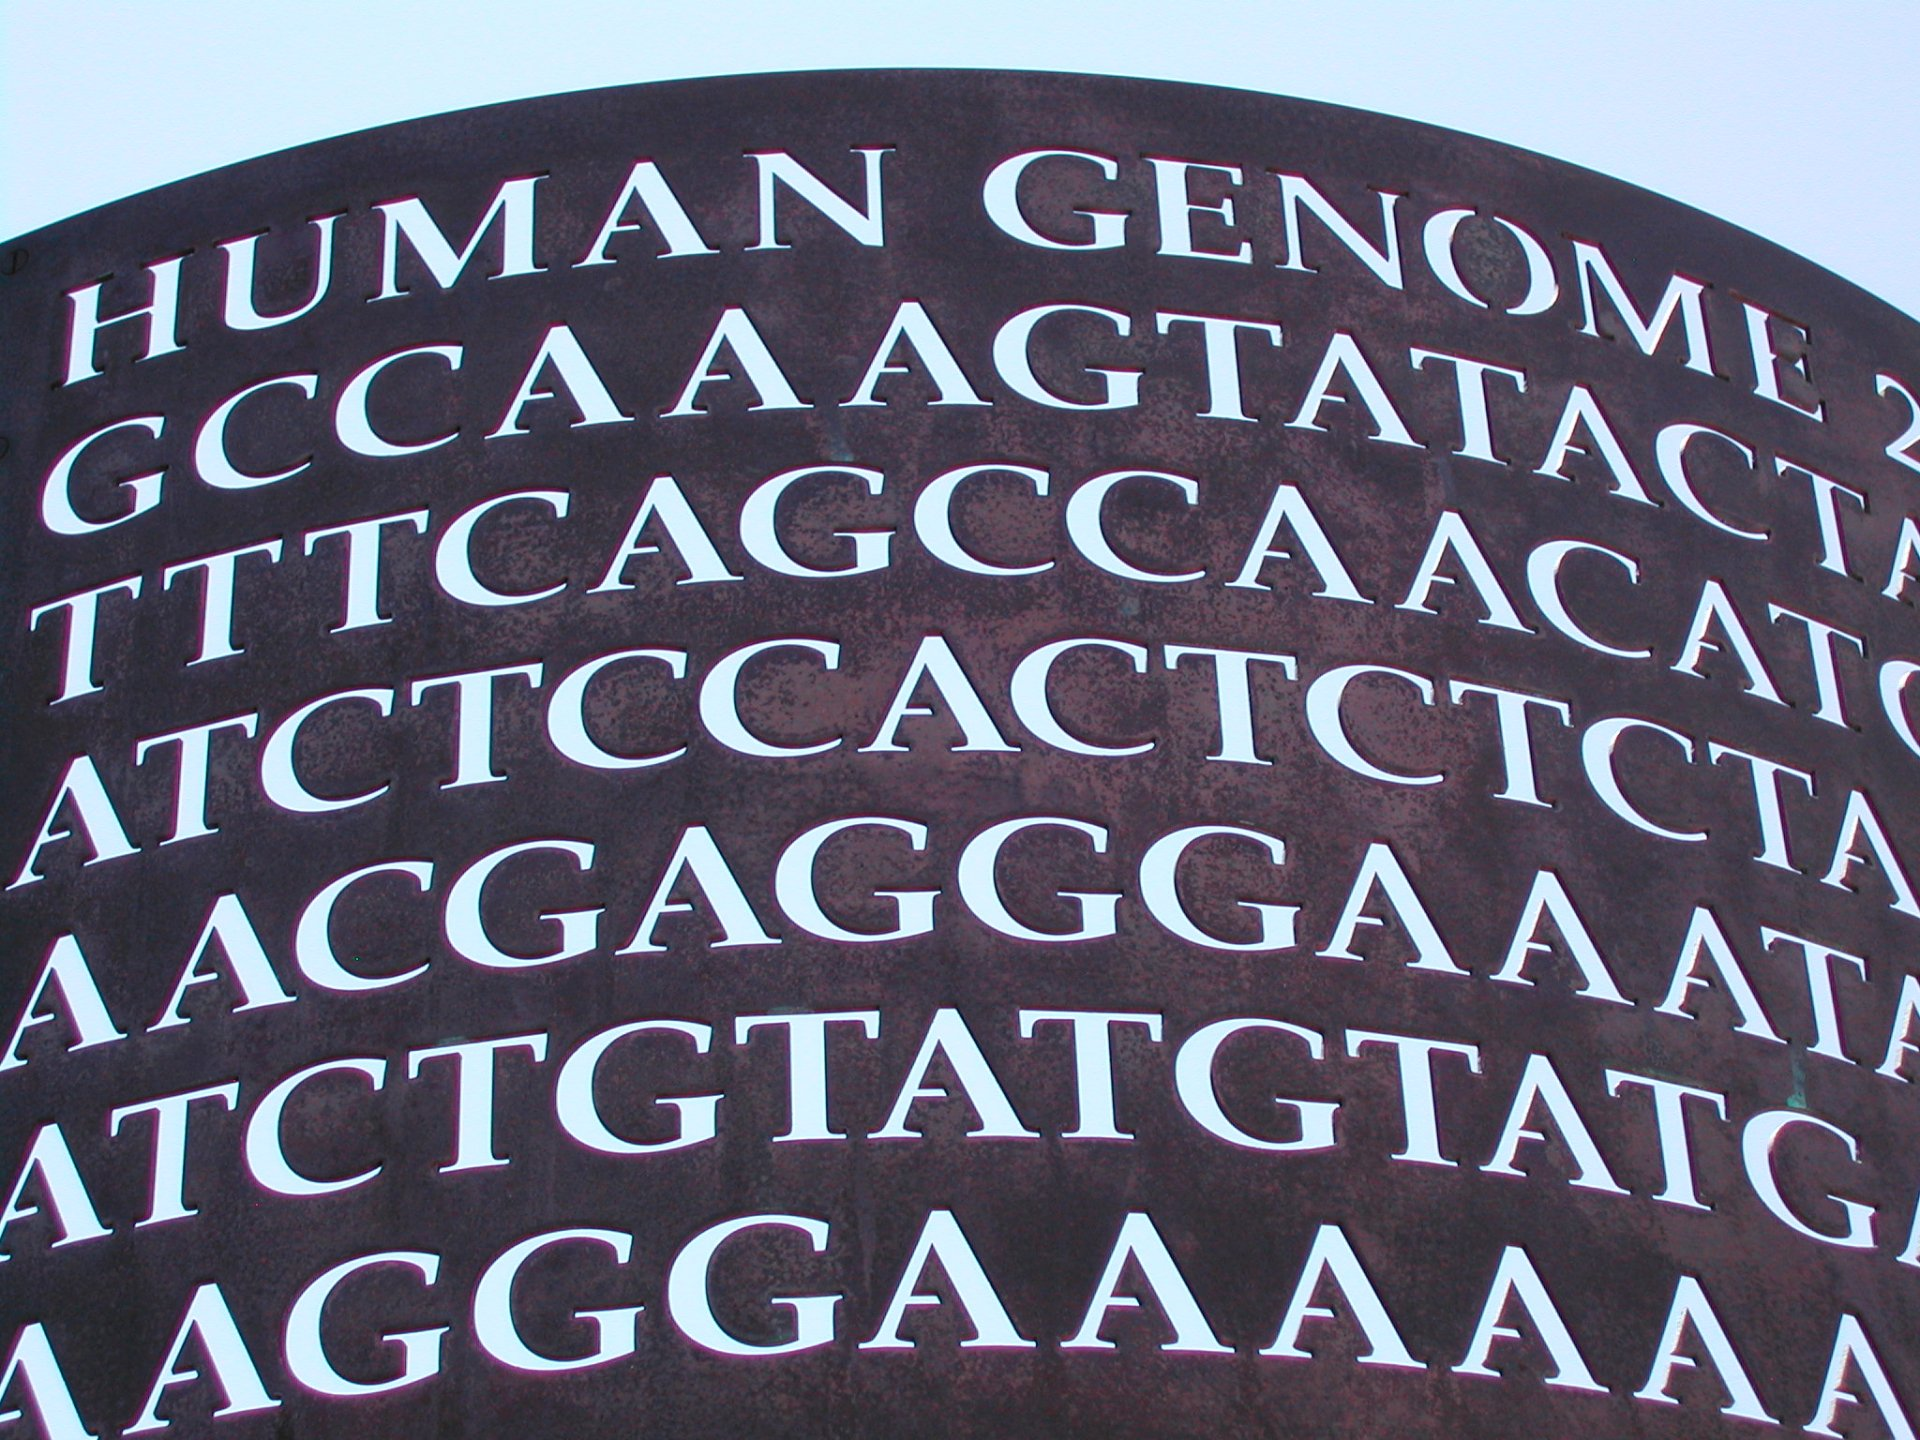 The Human genome project would have once seemed impossibleCredit:  Tom Purcell